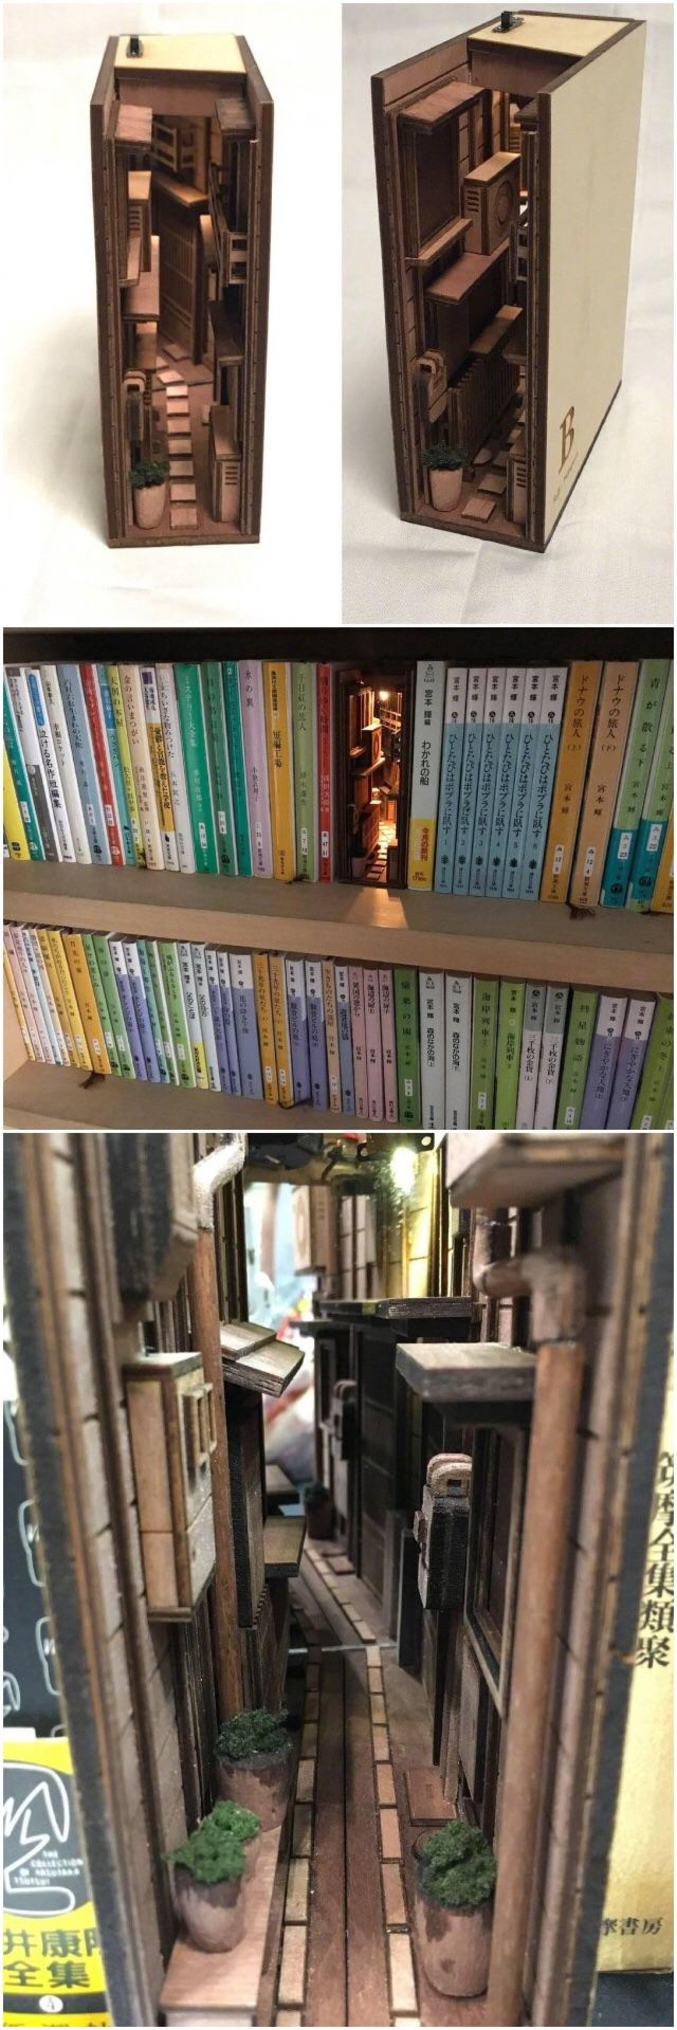 Fabriqué par Monde.